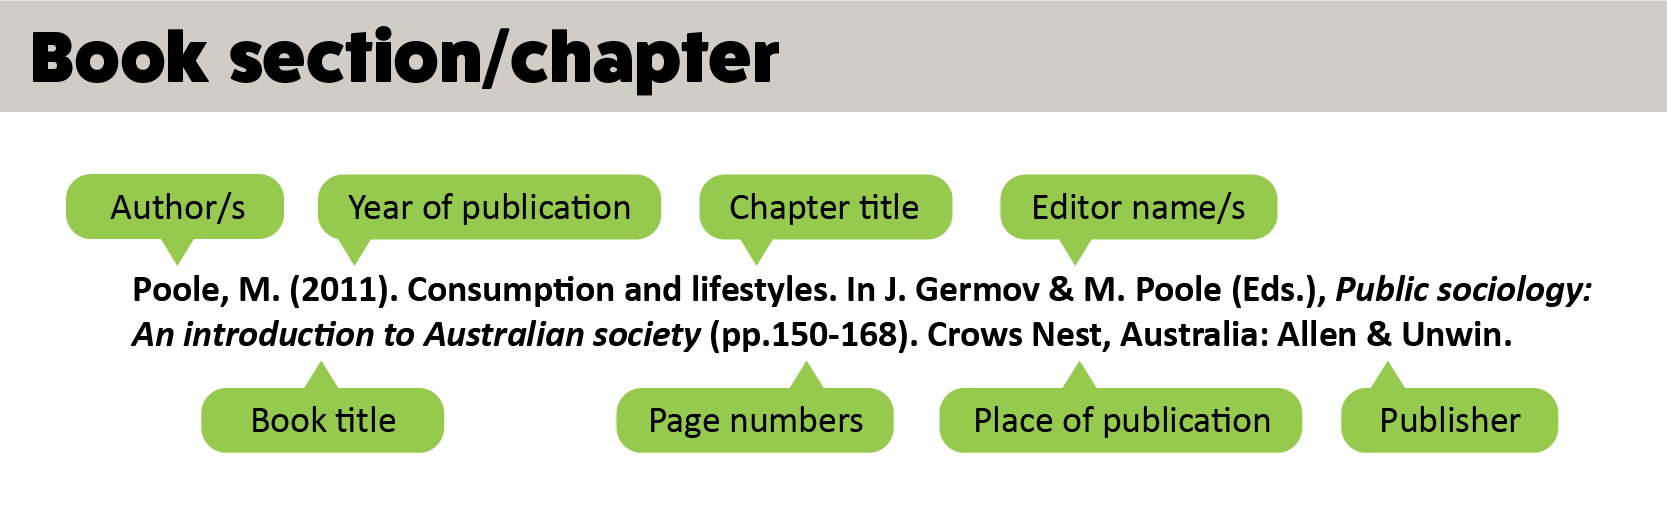 Book section/chapter citations should have the following structure: Author/s. Year of publication in parentheses. Chapter title. Editor name/s. Book title in italics. Page numbers. Place of publication and publisher.